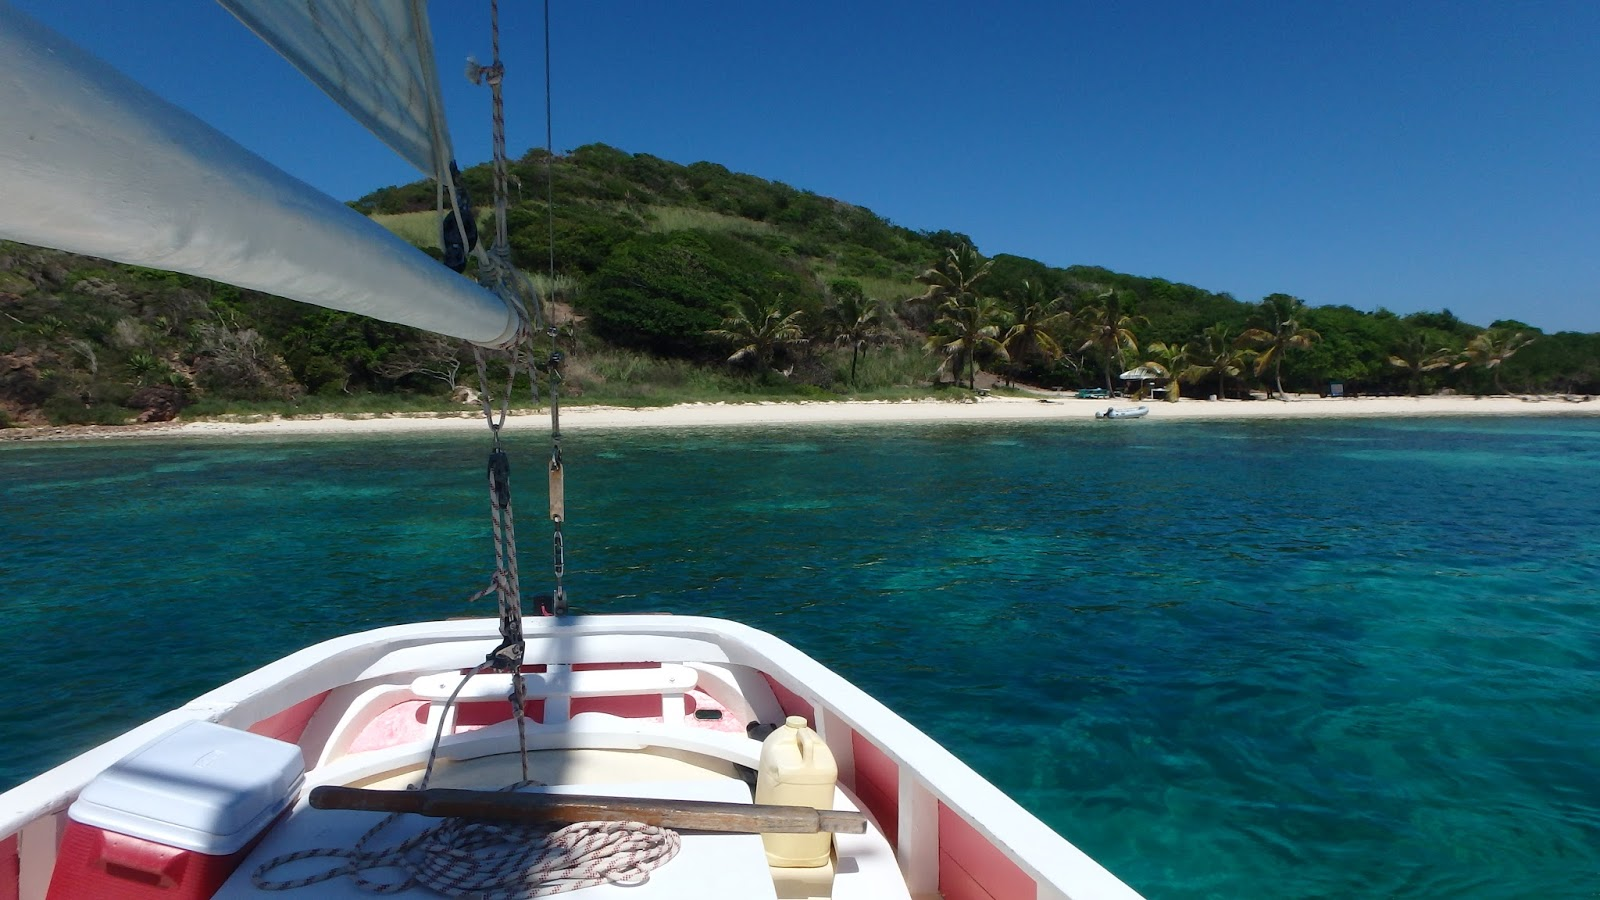 Sailing on the Pink Lady in the Tobago Cays in St Vincent and The Grenadines